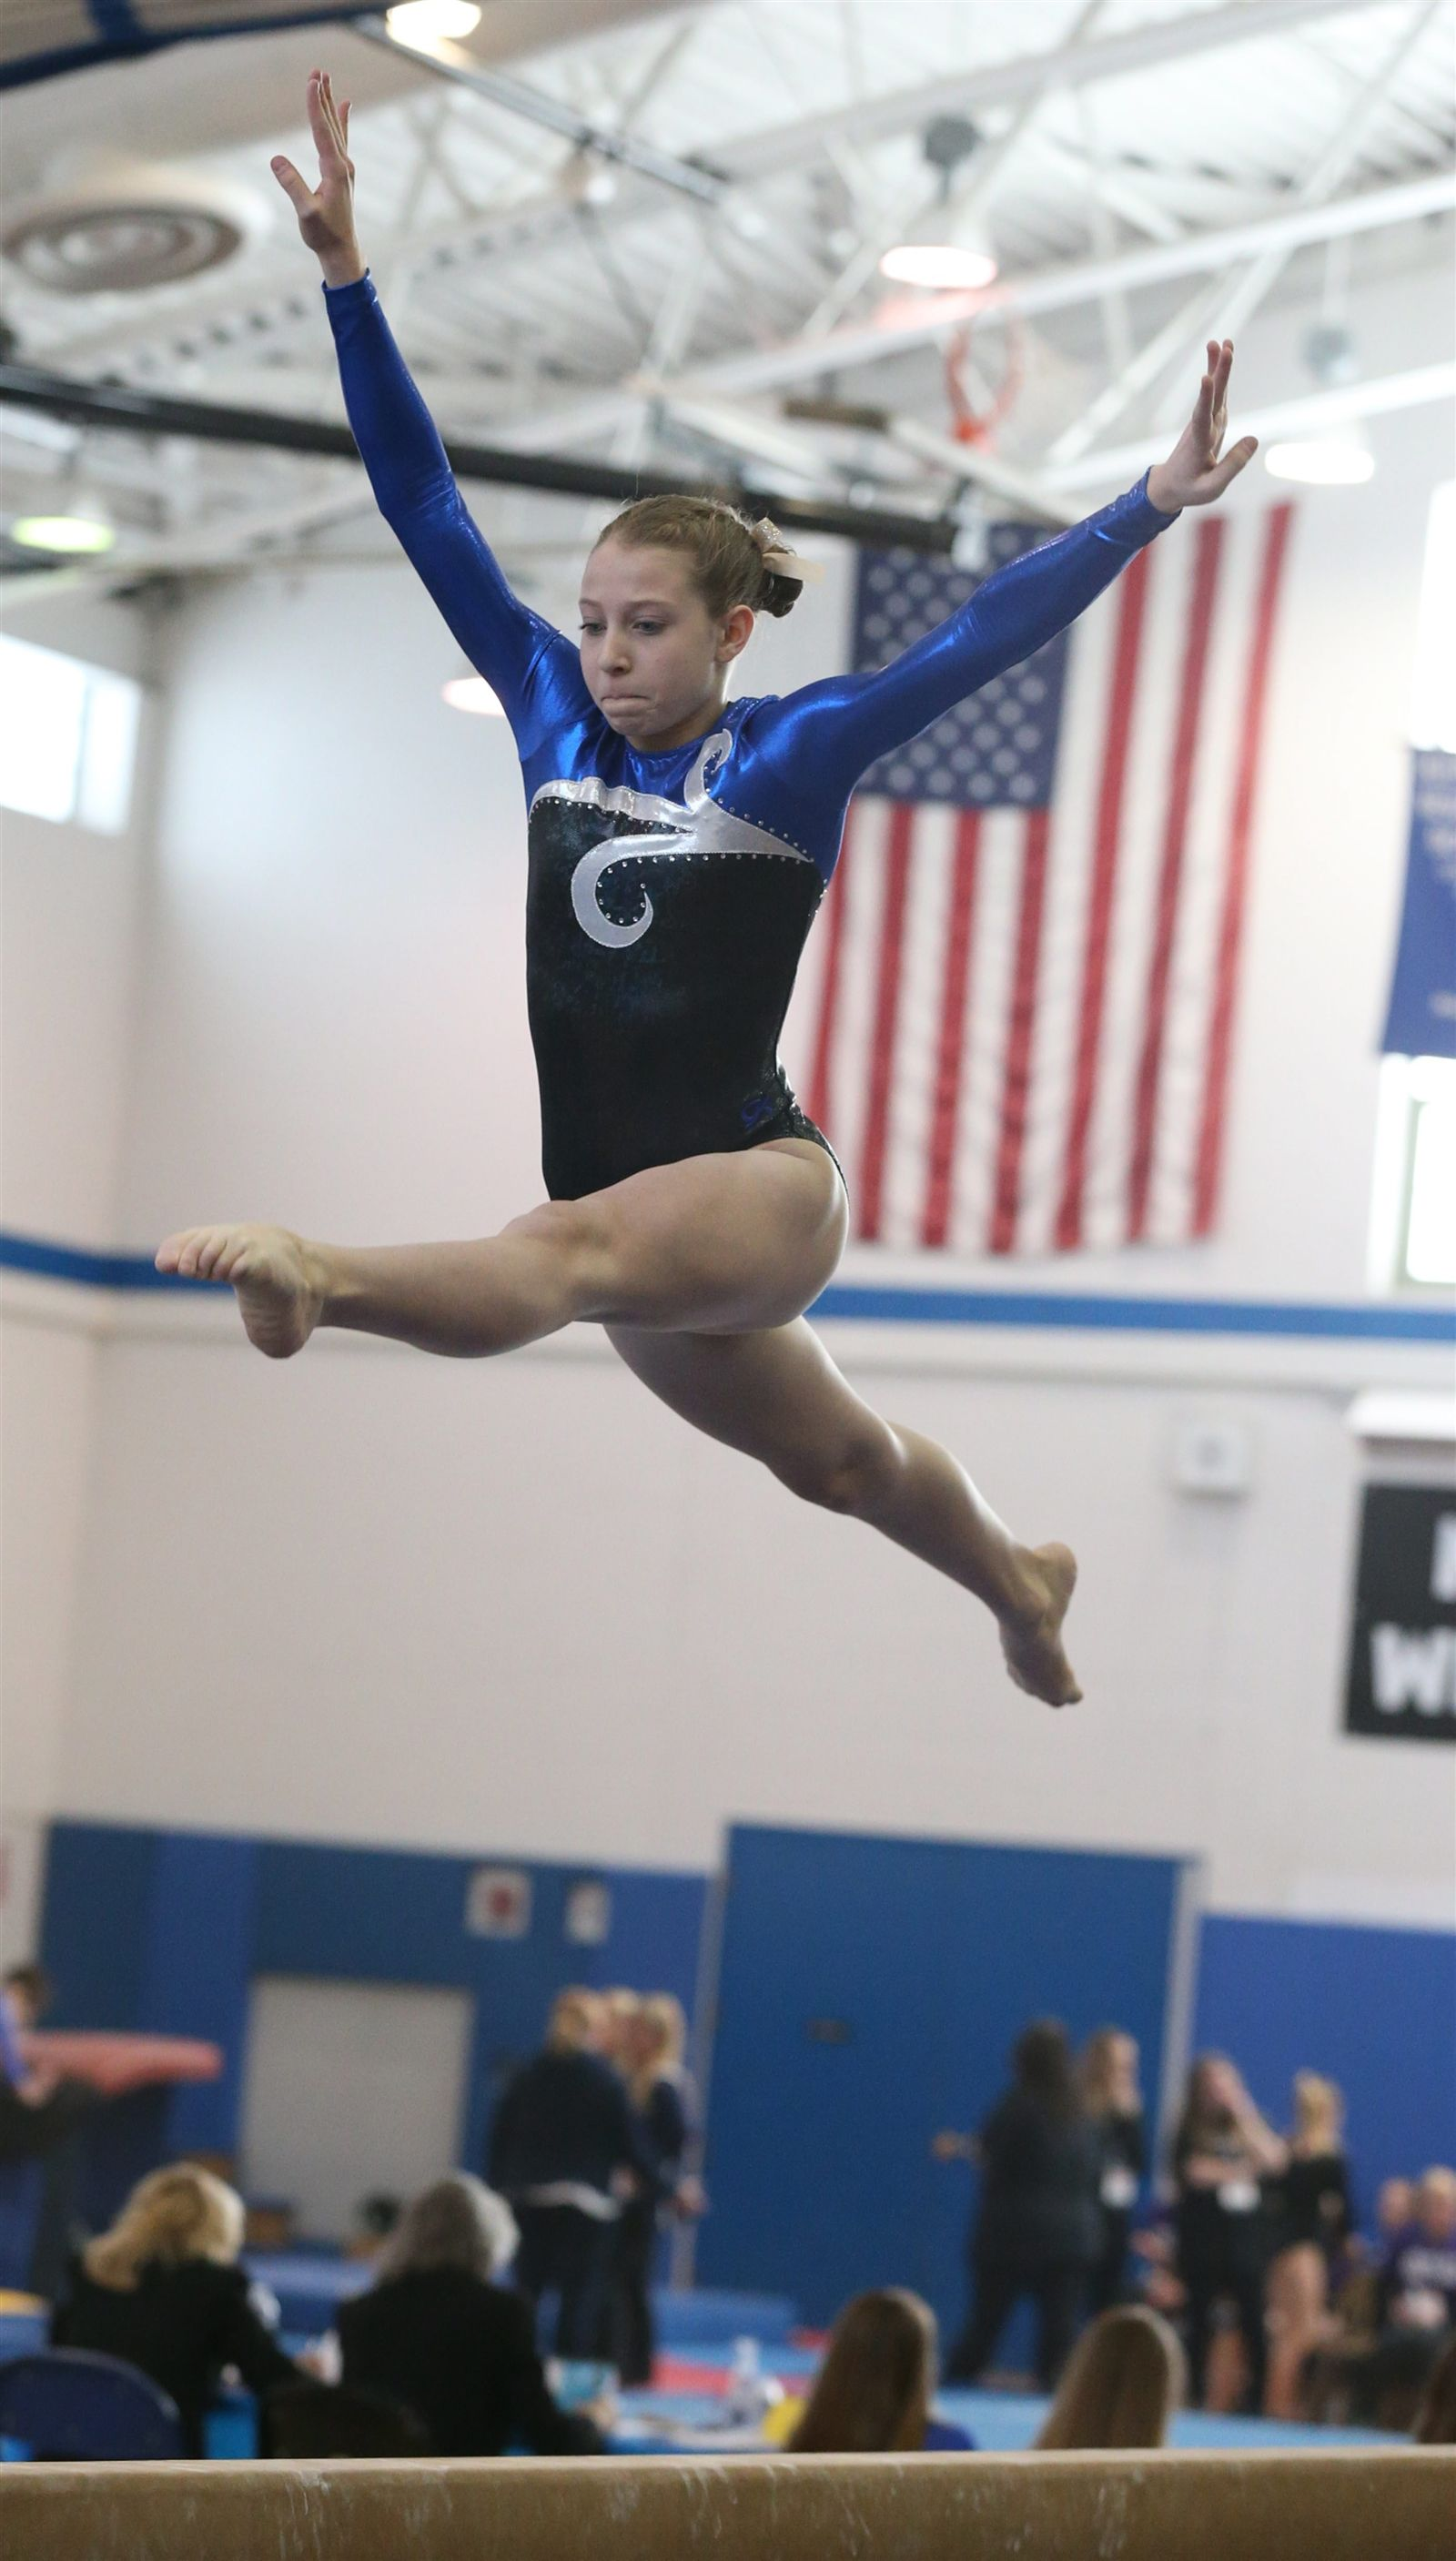 Makenzie Castiglione competes on the balance beam during the Section VI girls state gymnastics championships at Kenmore West High School in Kenmore,N.Y. on Saturday, Feb. 28, 2015.